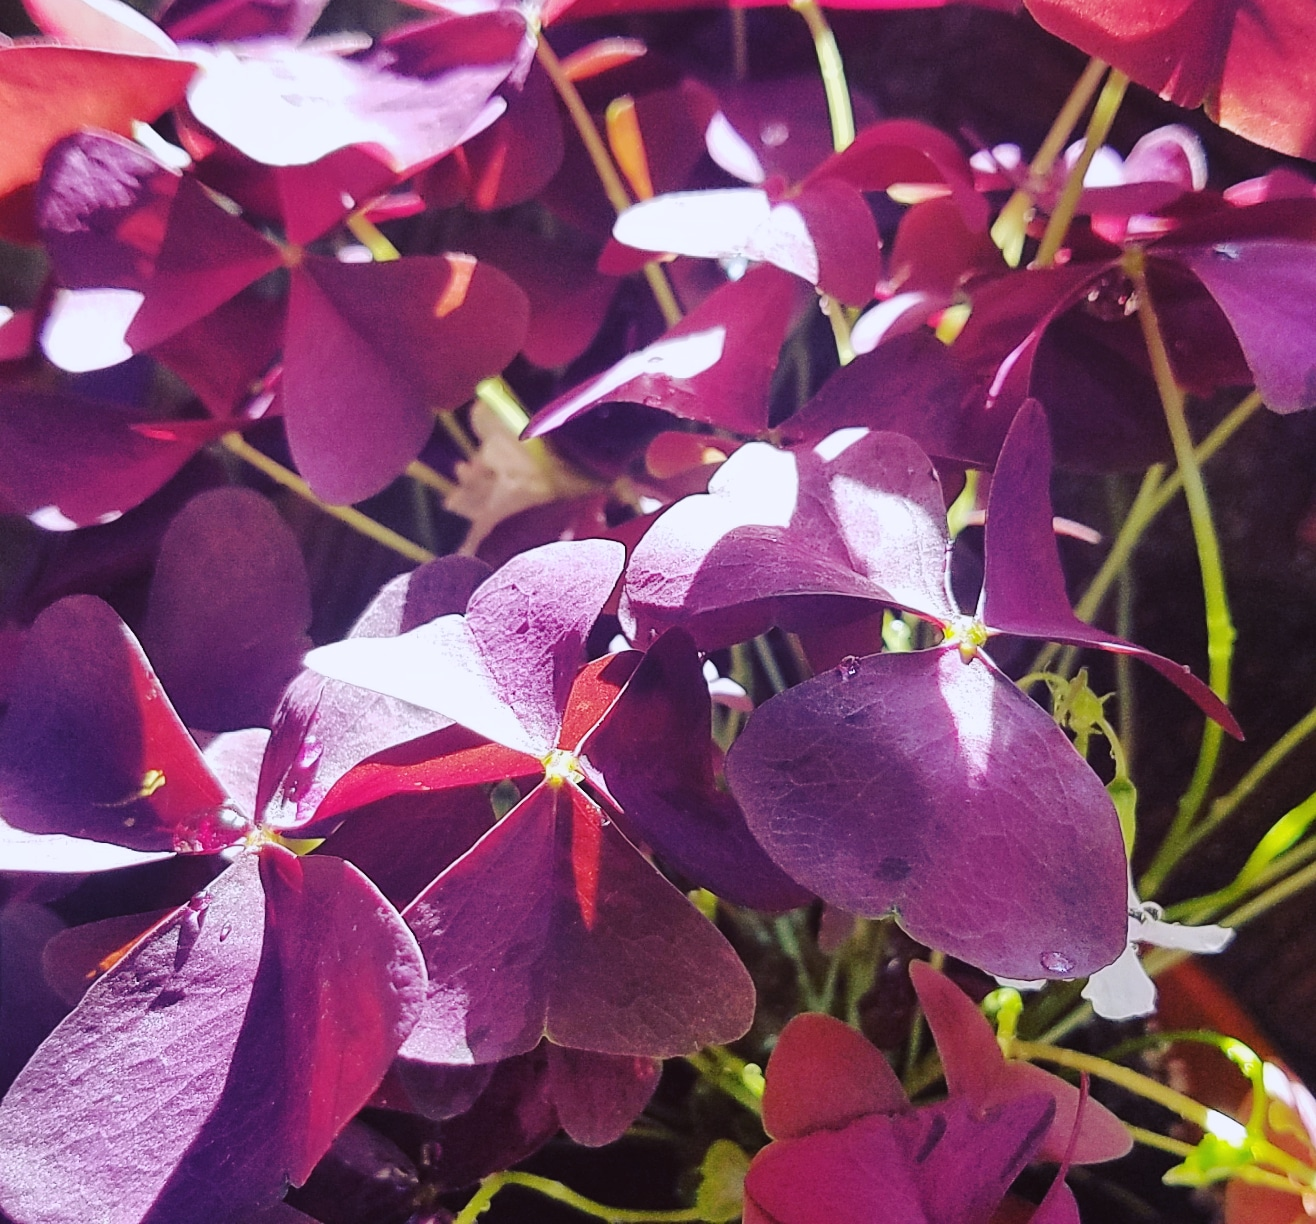 Ode to Oxalis